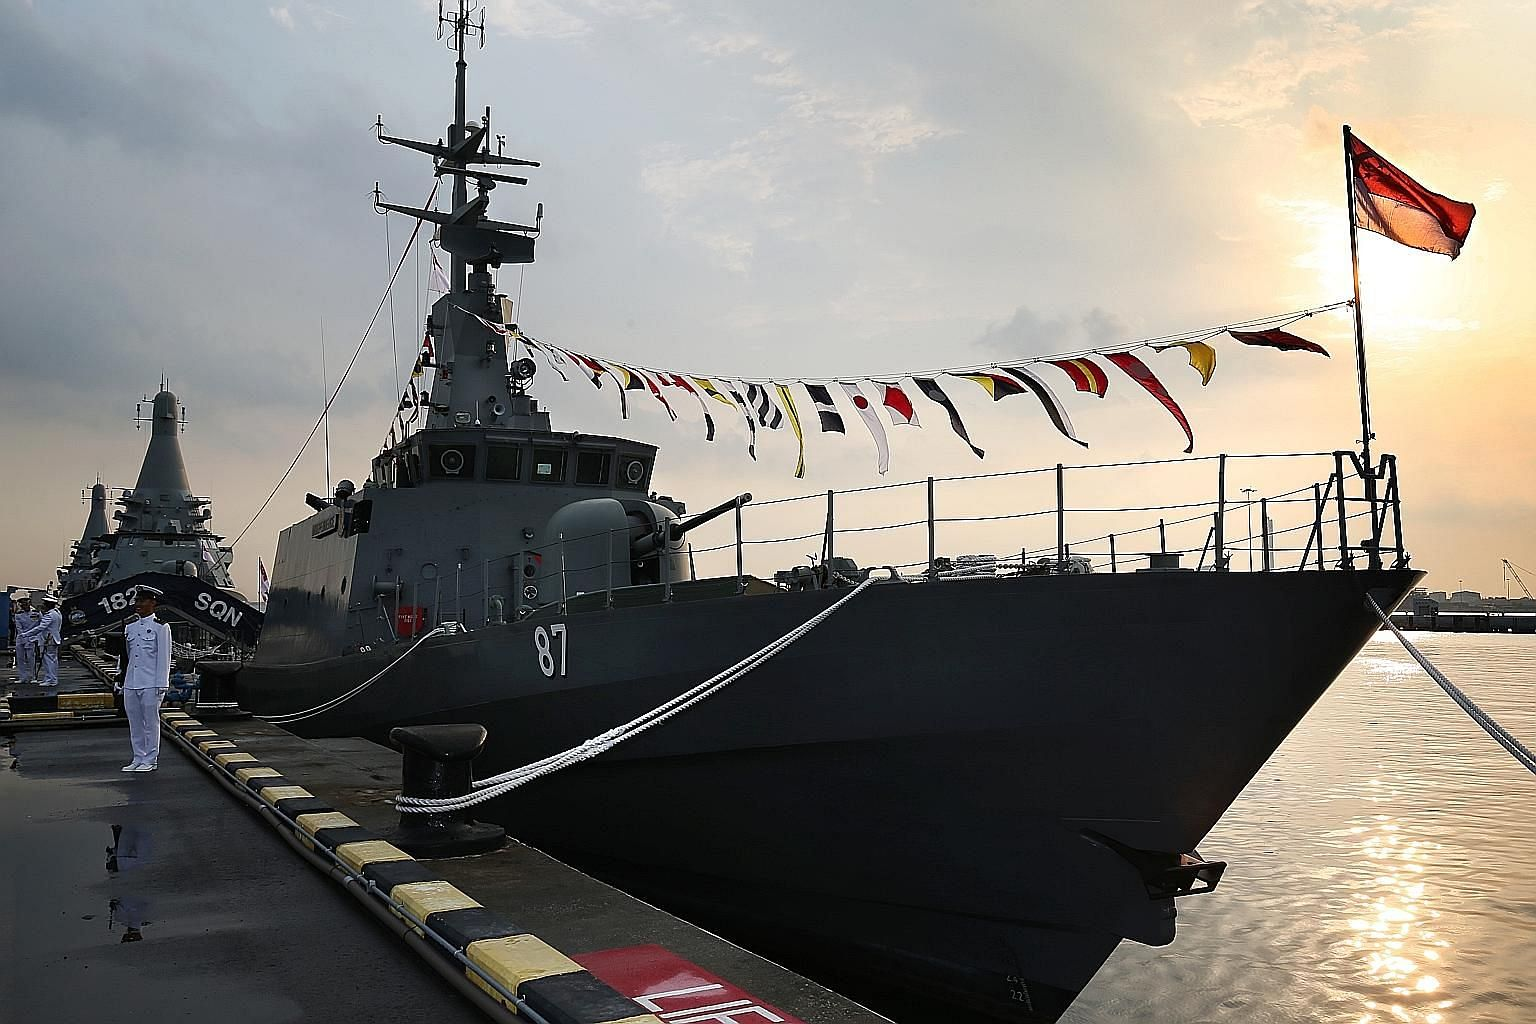 Top: RSS Independence (in front) and LMV Independence (background) at the decommissioning ceremony at Tuas Naval Base yesterday. Above: Singapore Navy sailors bade farewell to the patrol vessel during the ceremony, as flags on the warship were lowere